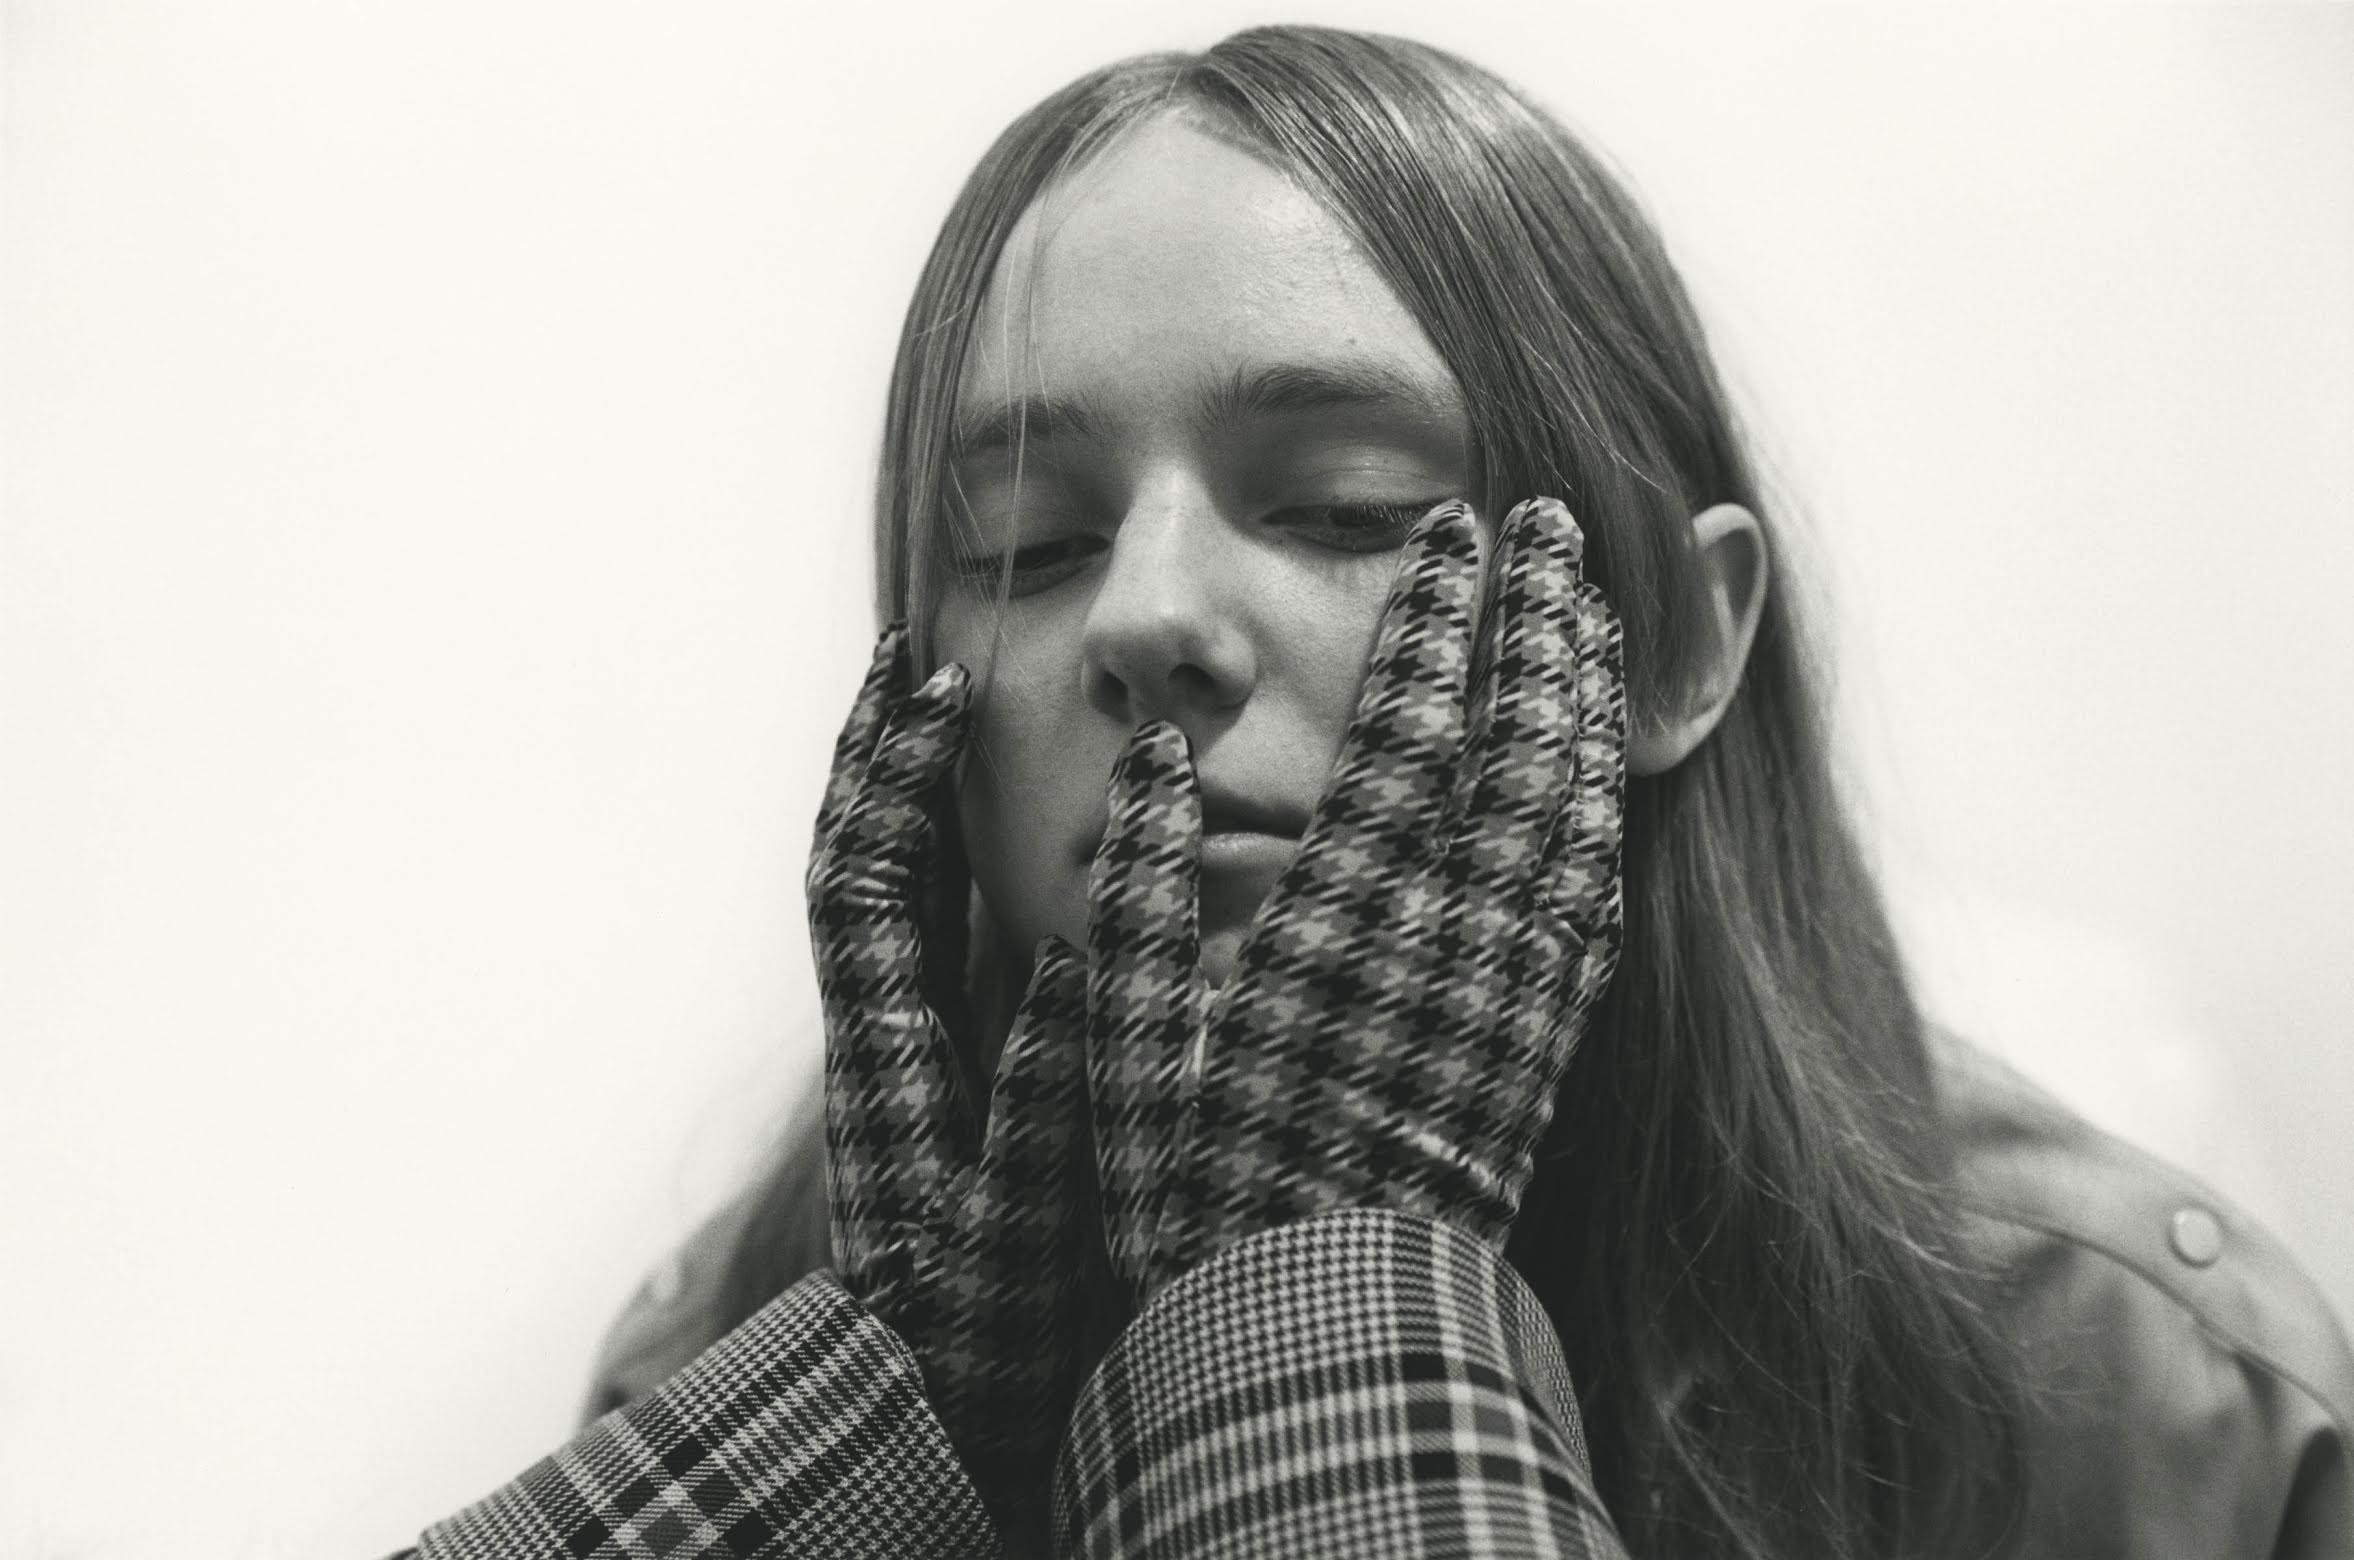 rokh_aw18_campaign_selfservice_fashion_collection_03.jpg